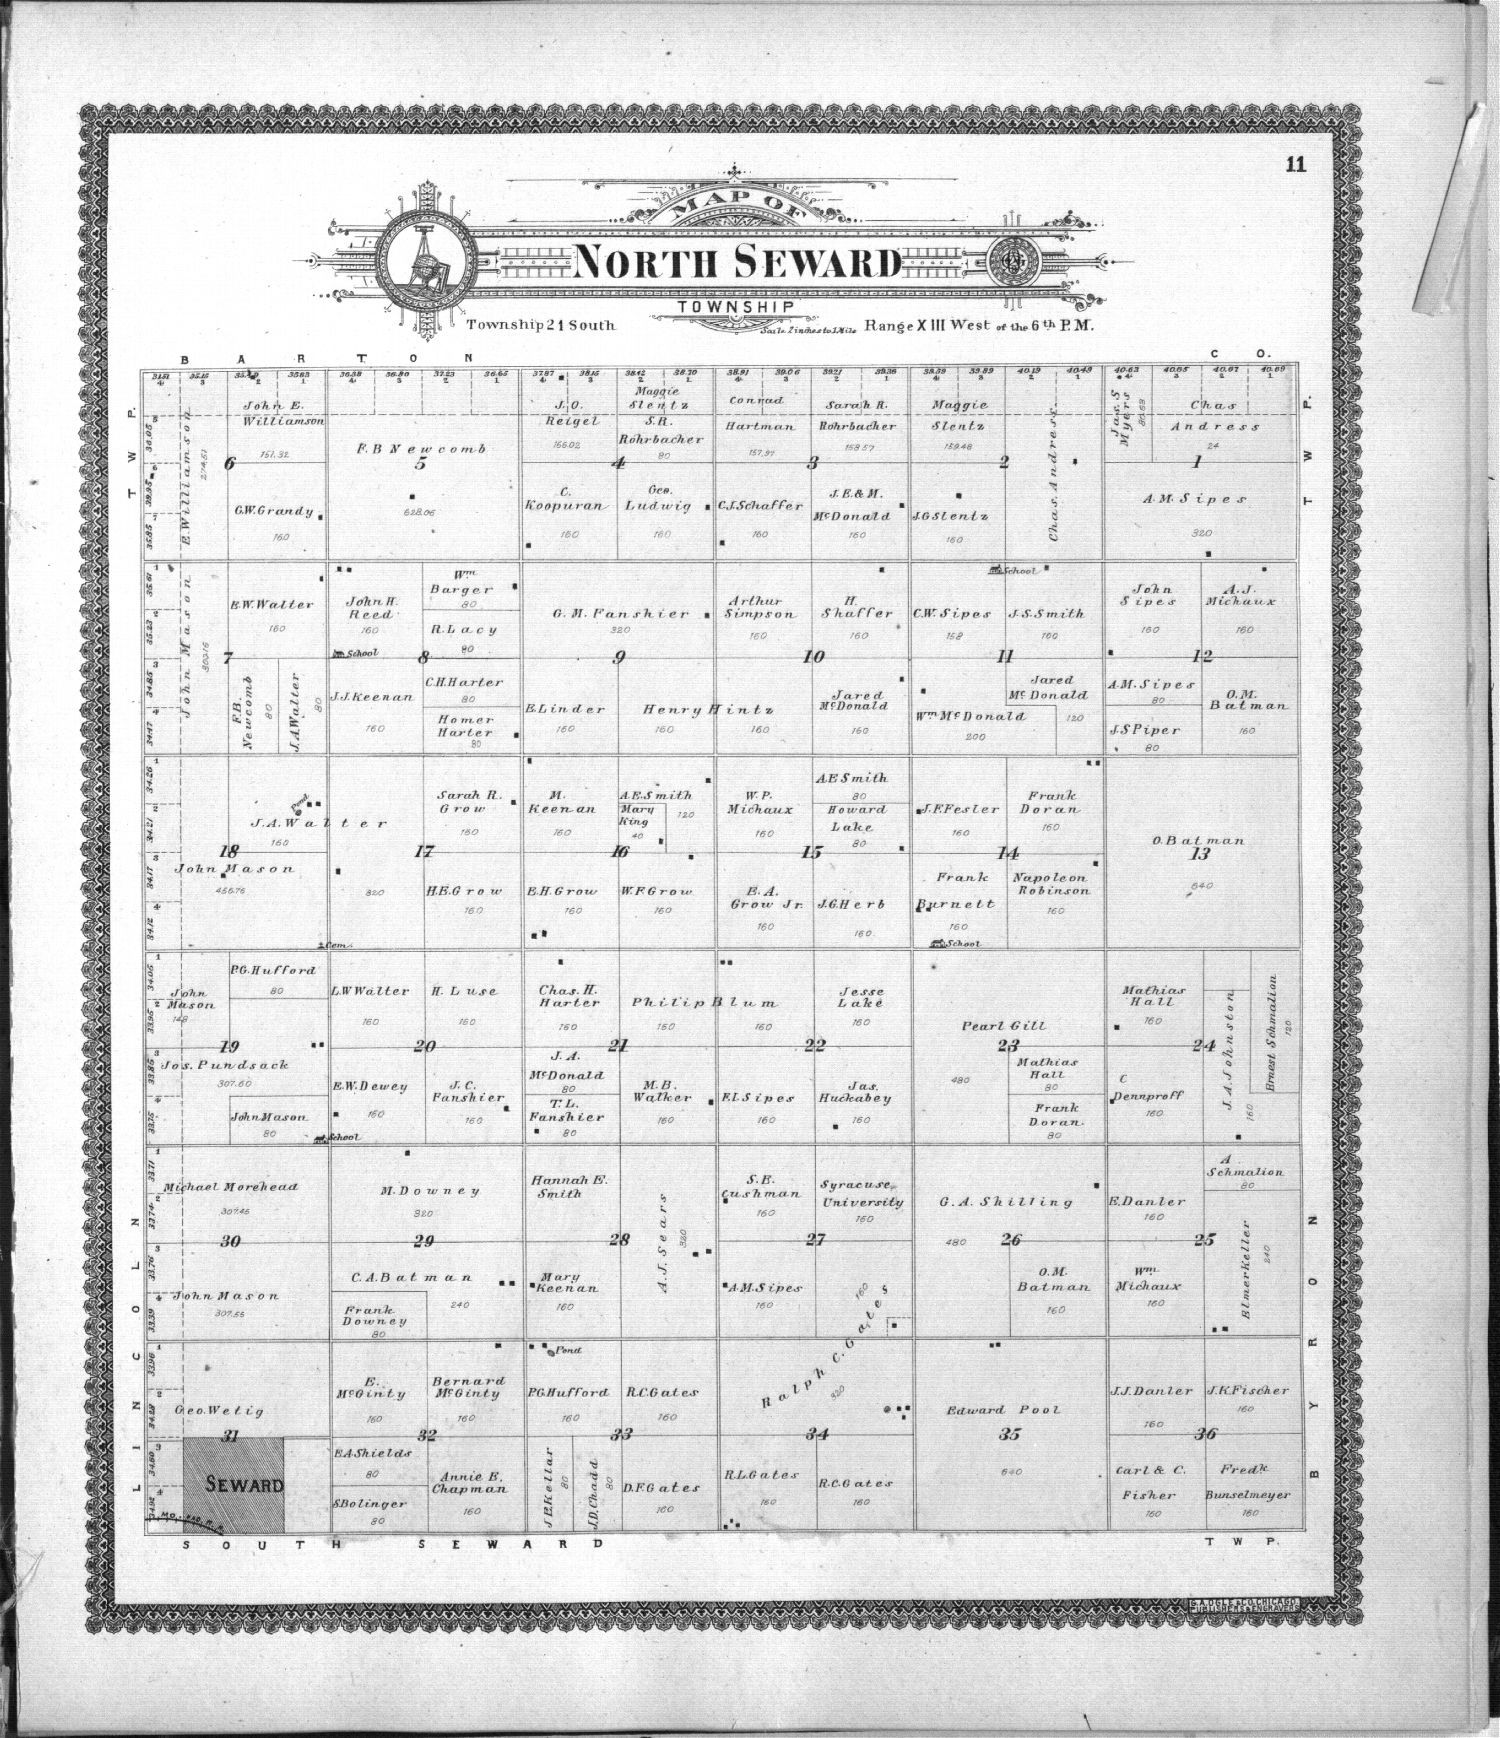 Standard atlas of Stafford County, Kansas - 11